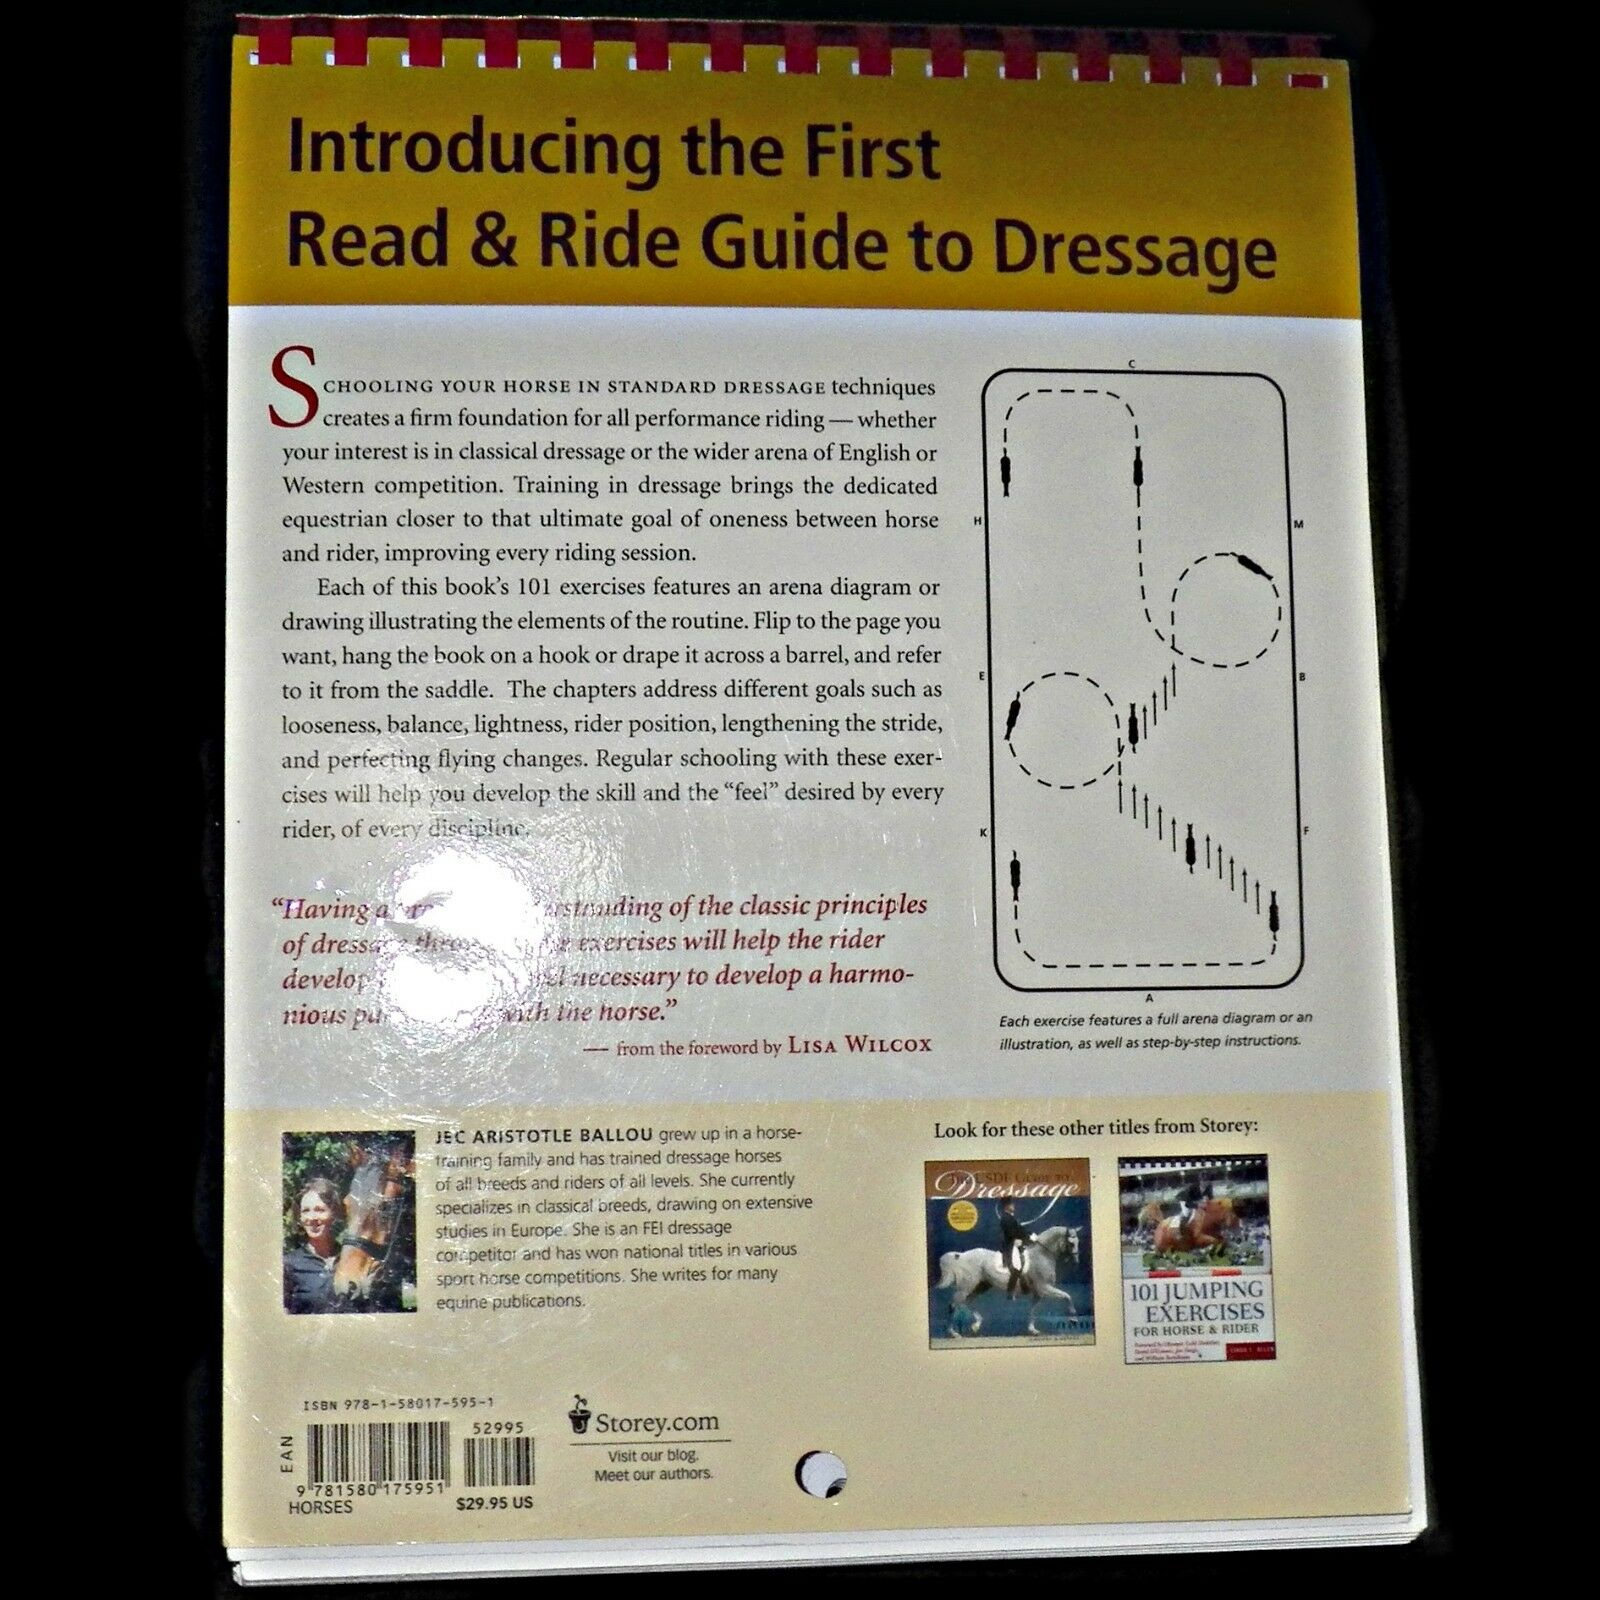 Read and Ride: 101 Dressage Exercises for Horse and Rider by Jec Aristotle  Ballou (2005, Paperback) | eBay